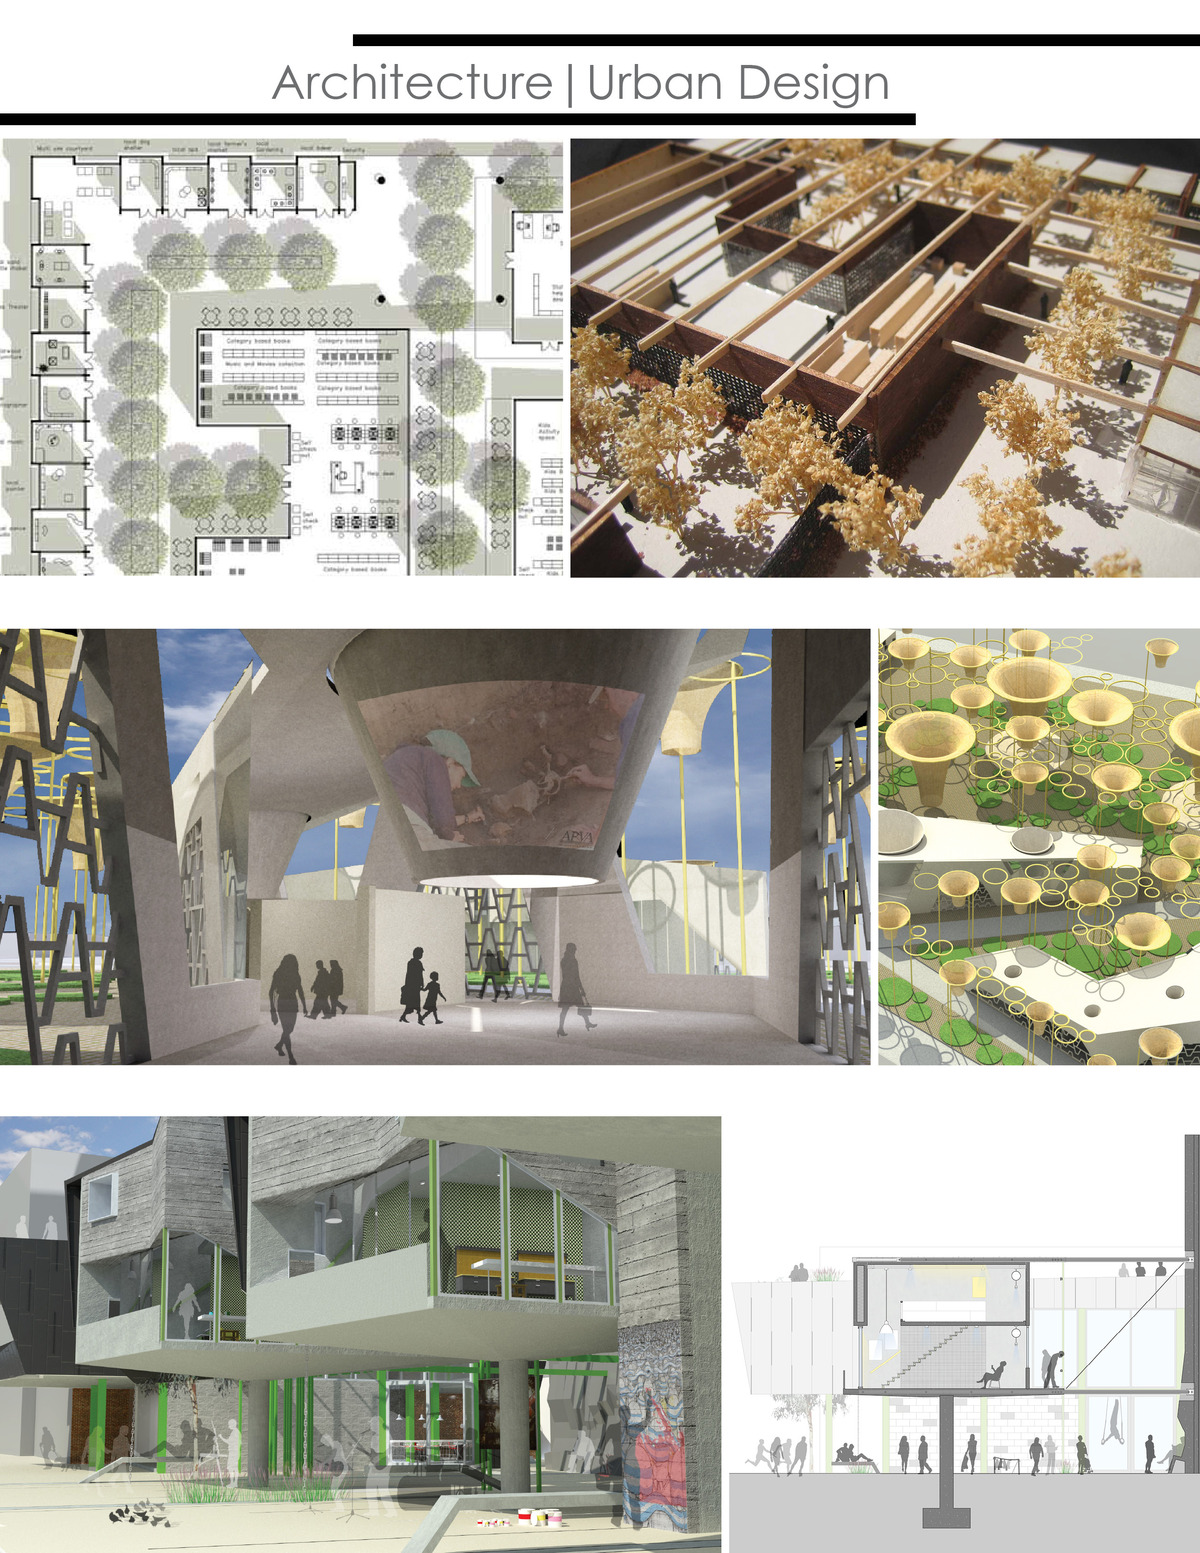 Work Sample | Architecture | Urban Design | Hussam Khoury | Archinect